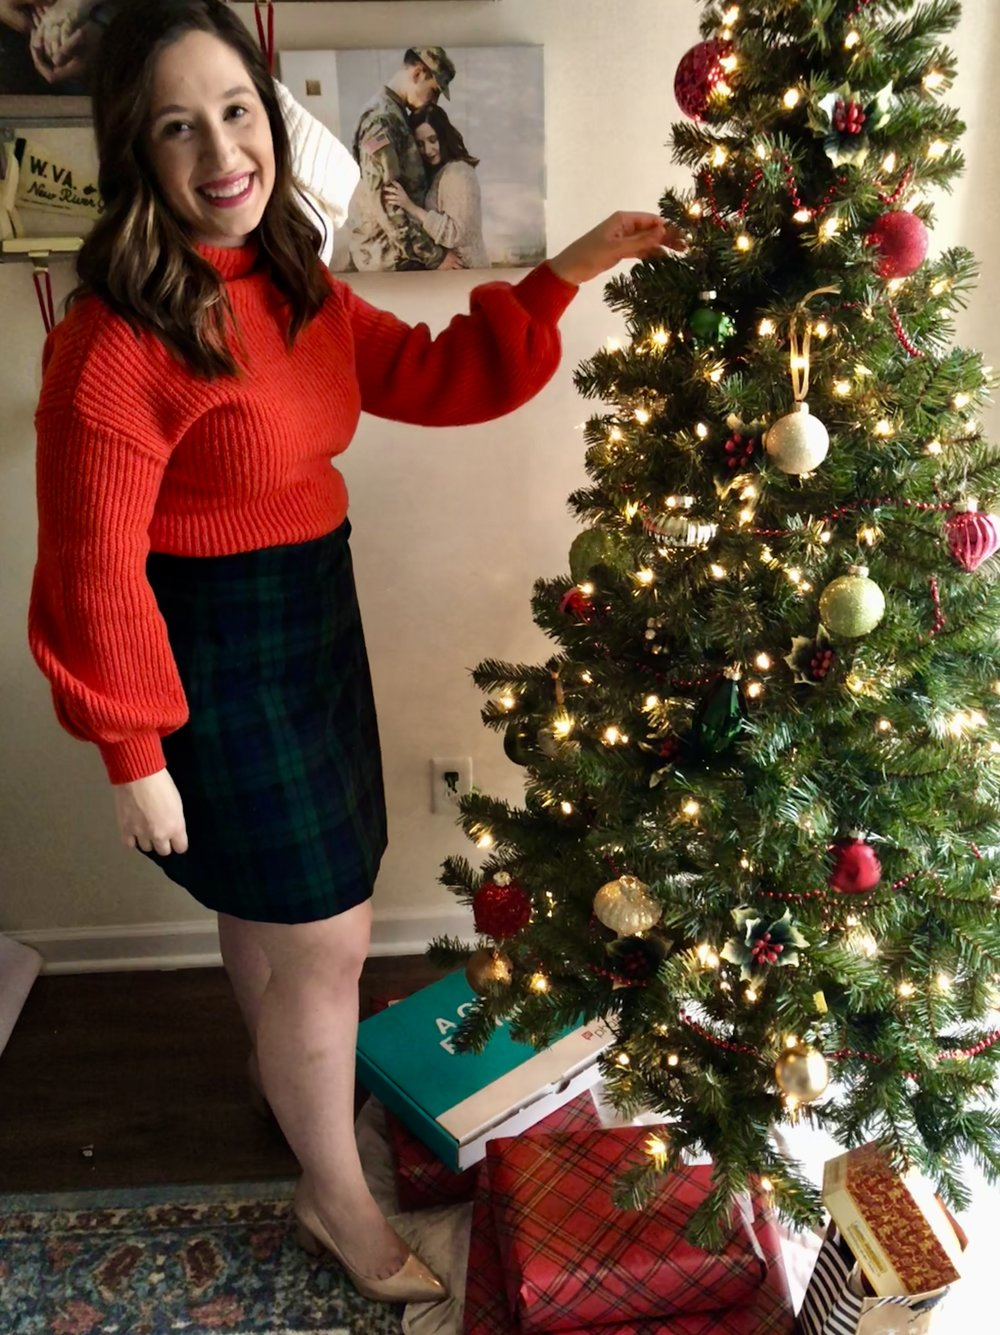 blogger outfit ideas, christmas outfit ideas, fashion blogger outfits